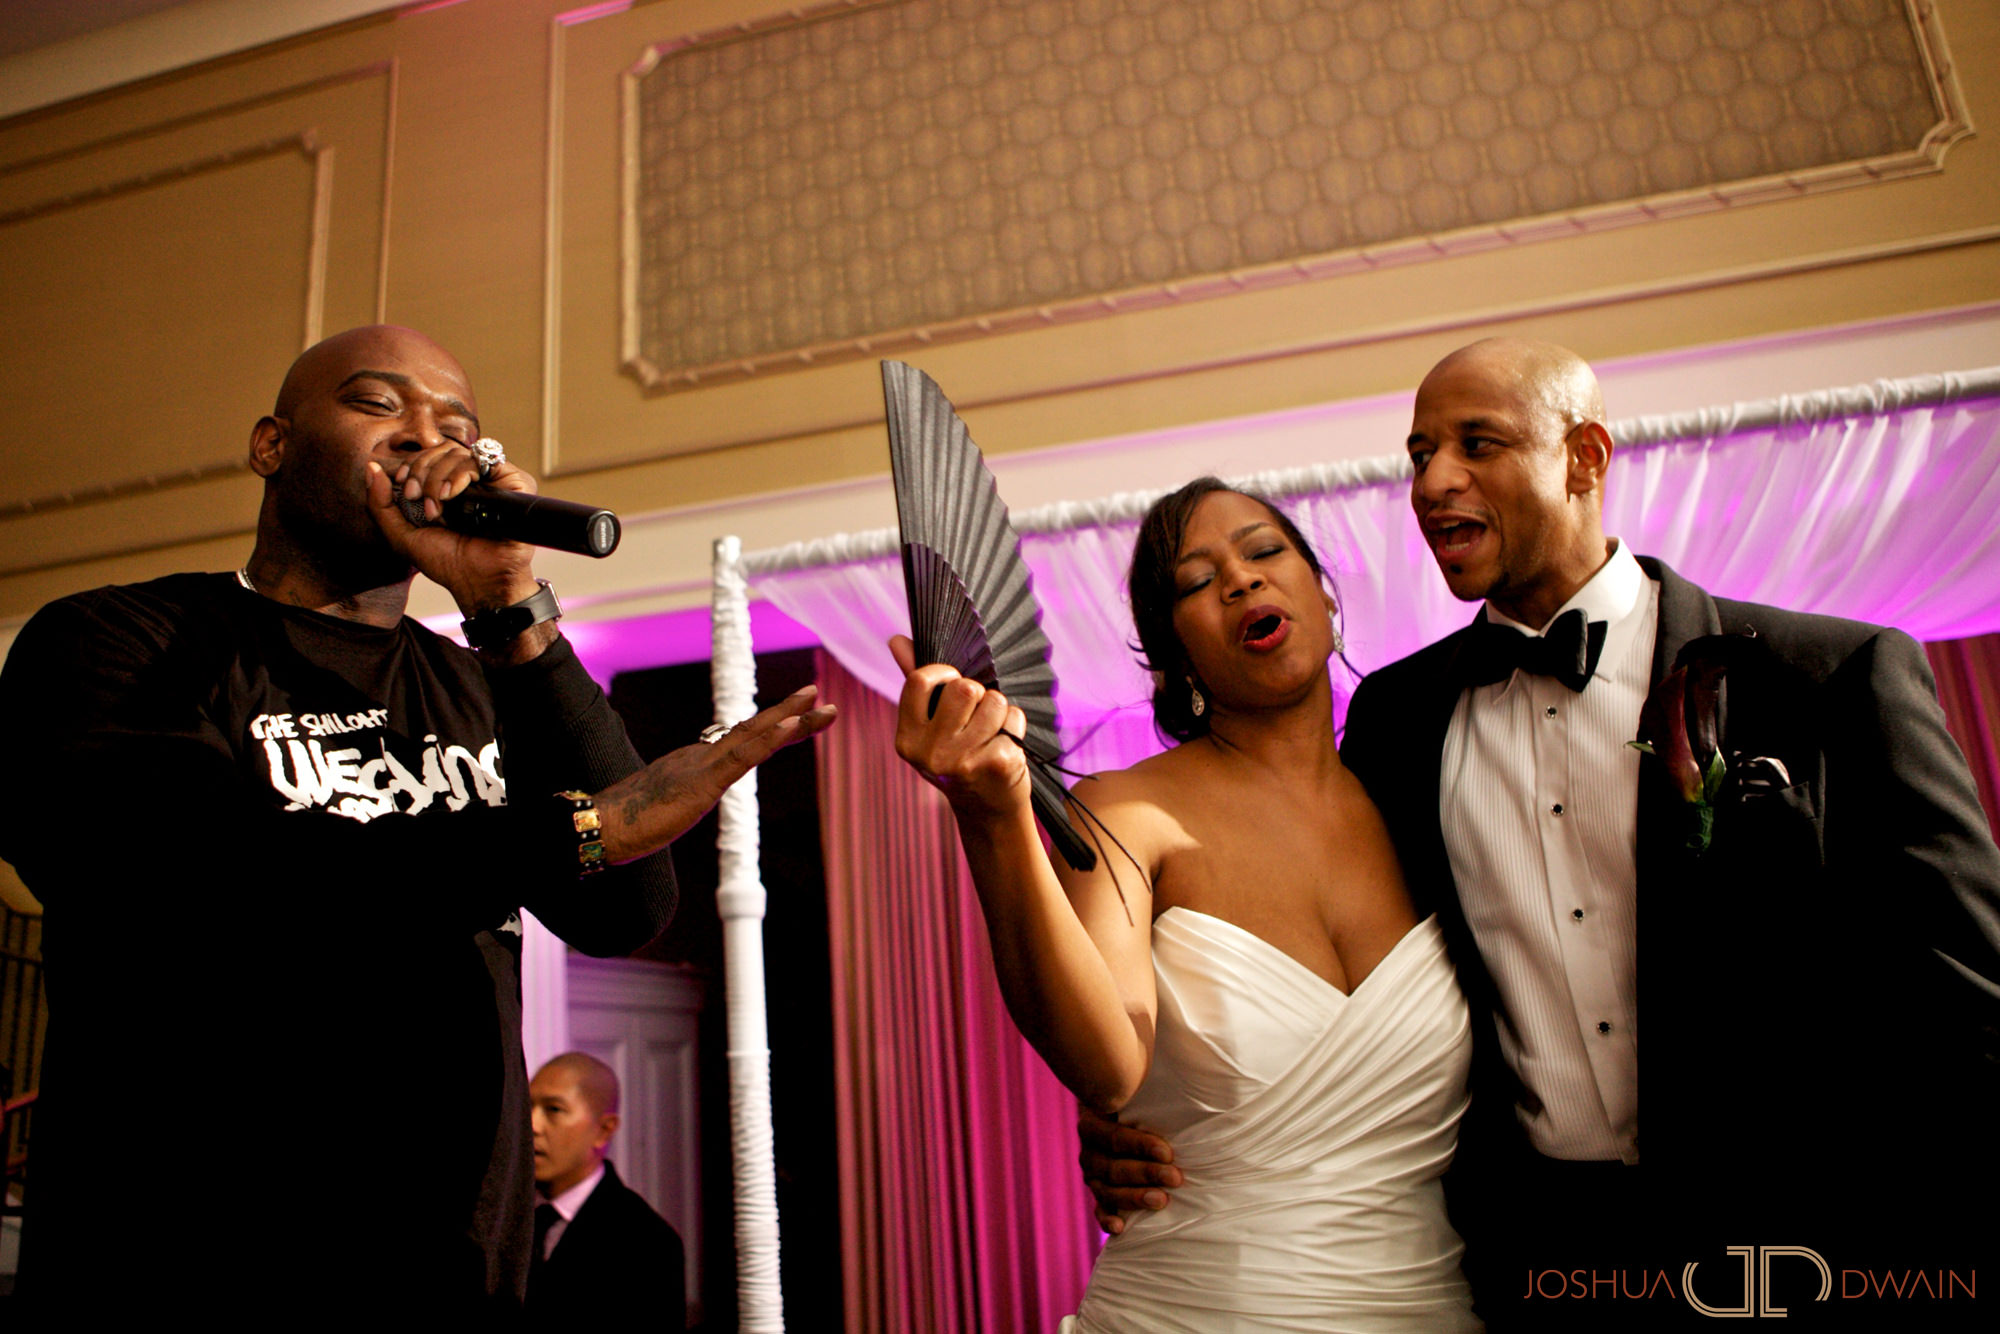 carol-shiloh-022-the-palace-somerset-new-jerseywedding-photographer-joshua-dwain-2011-11-25_cs_900